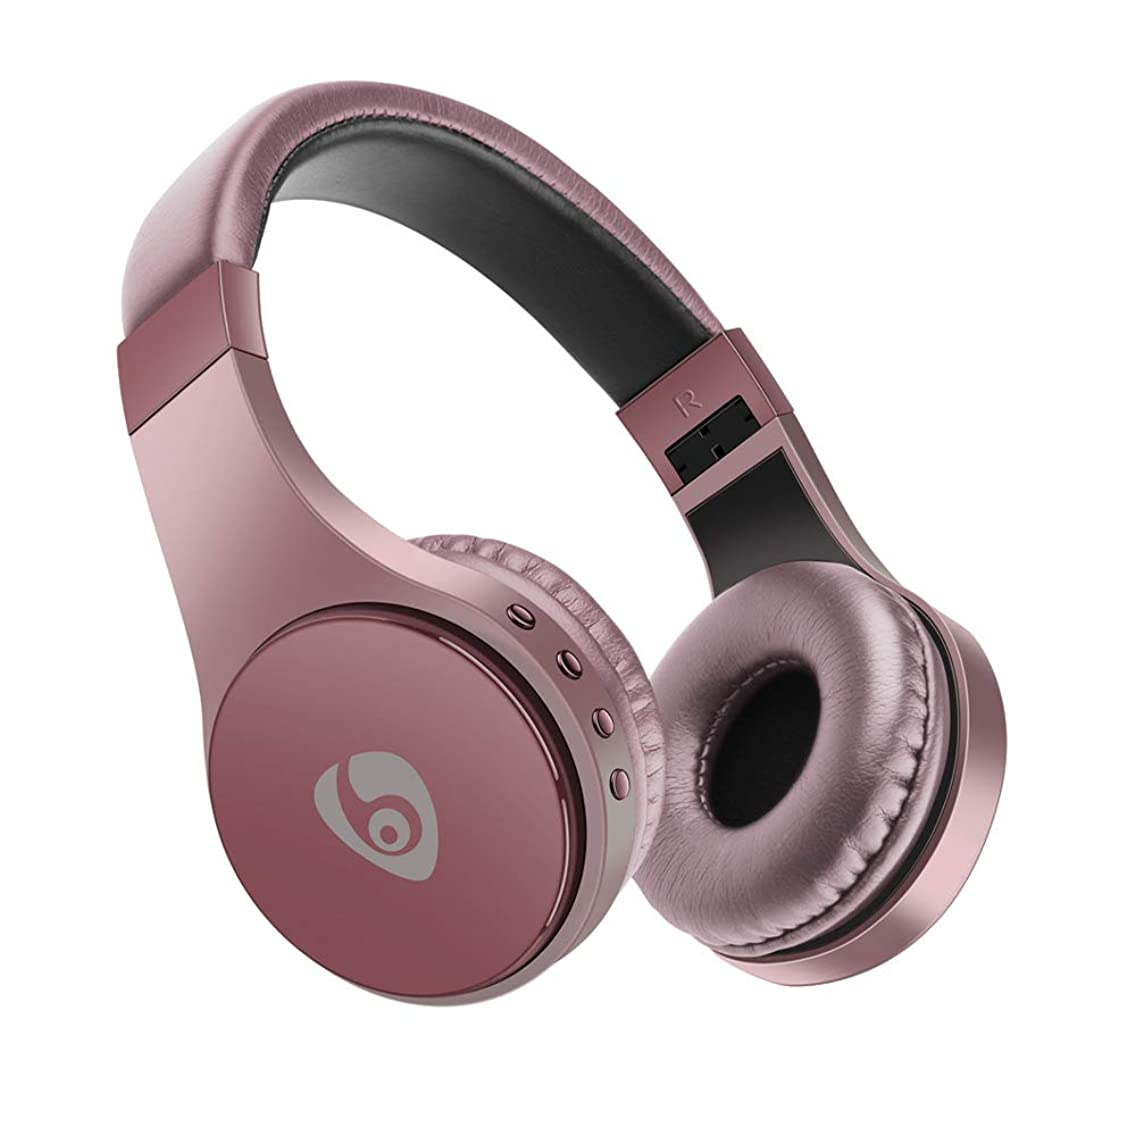 Wireless Bluetooth Headphone, AnnBay Foldable Over-The-Ear Head Wear Music Deep Bass Stereo Bluetooth 4.1 Headset for Cell Phone/Computer (Rose Gold)